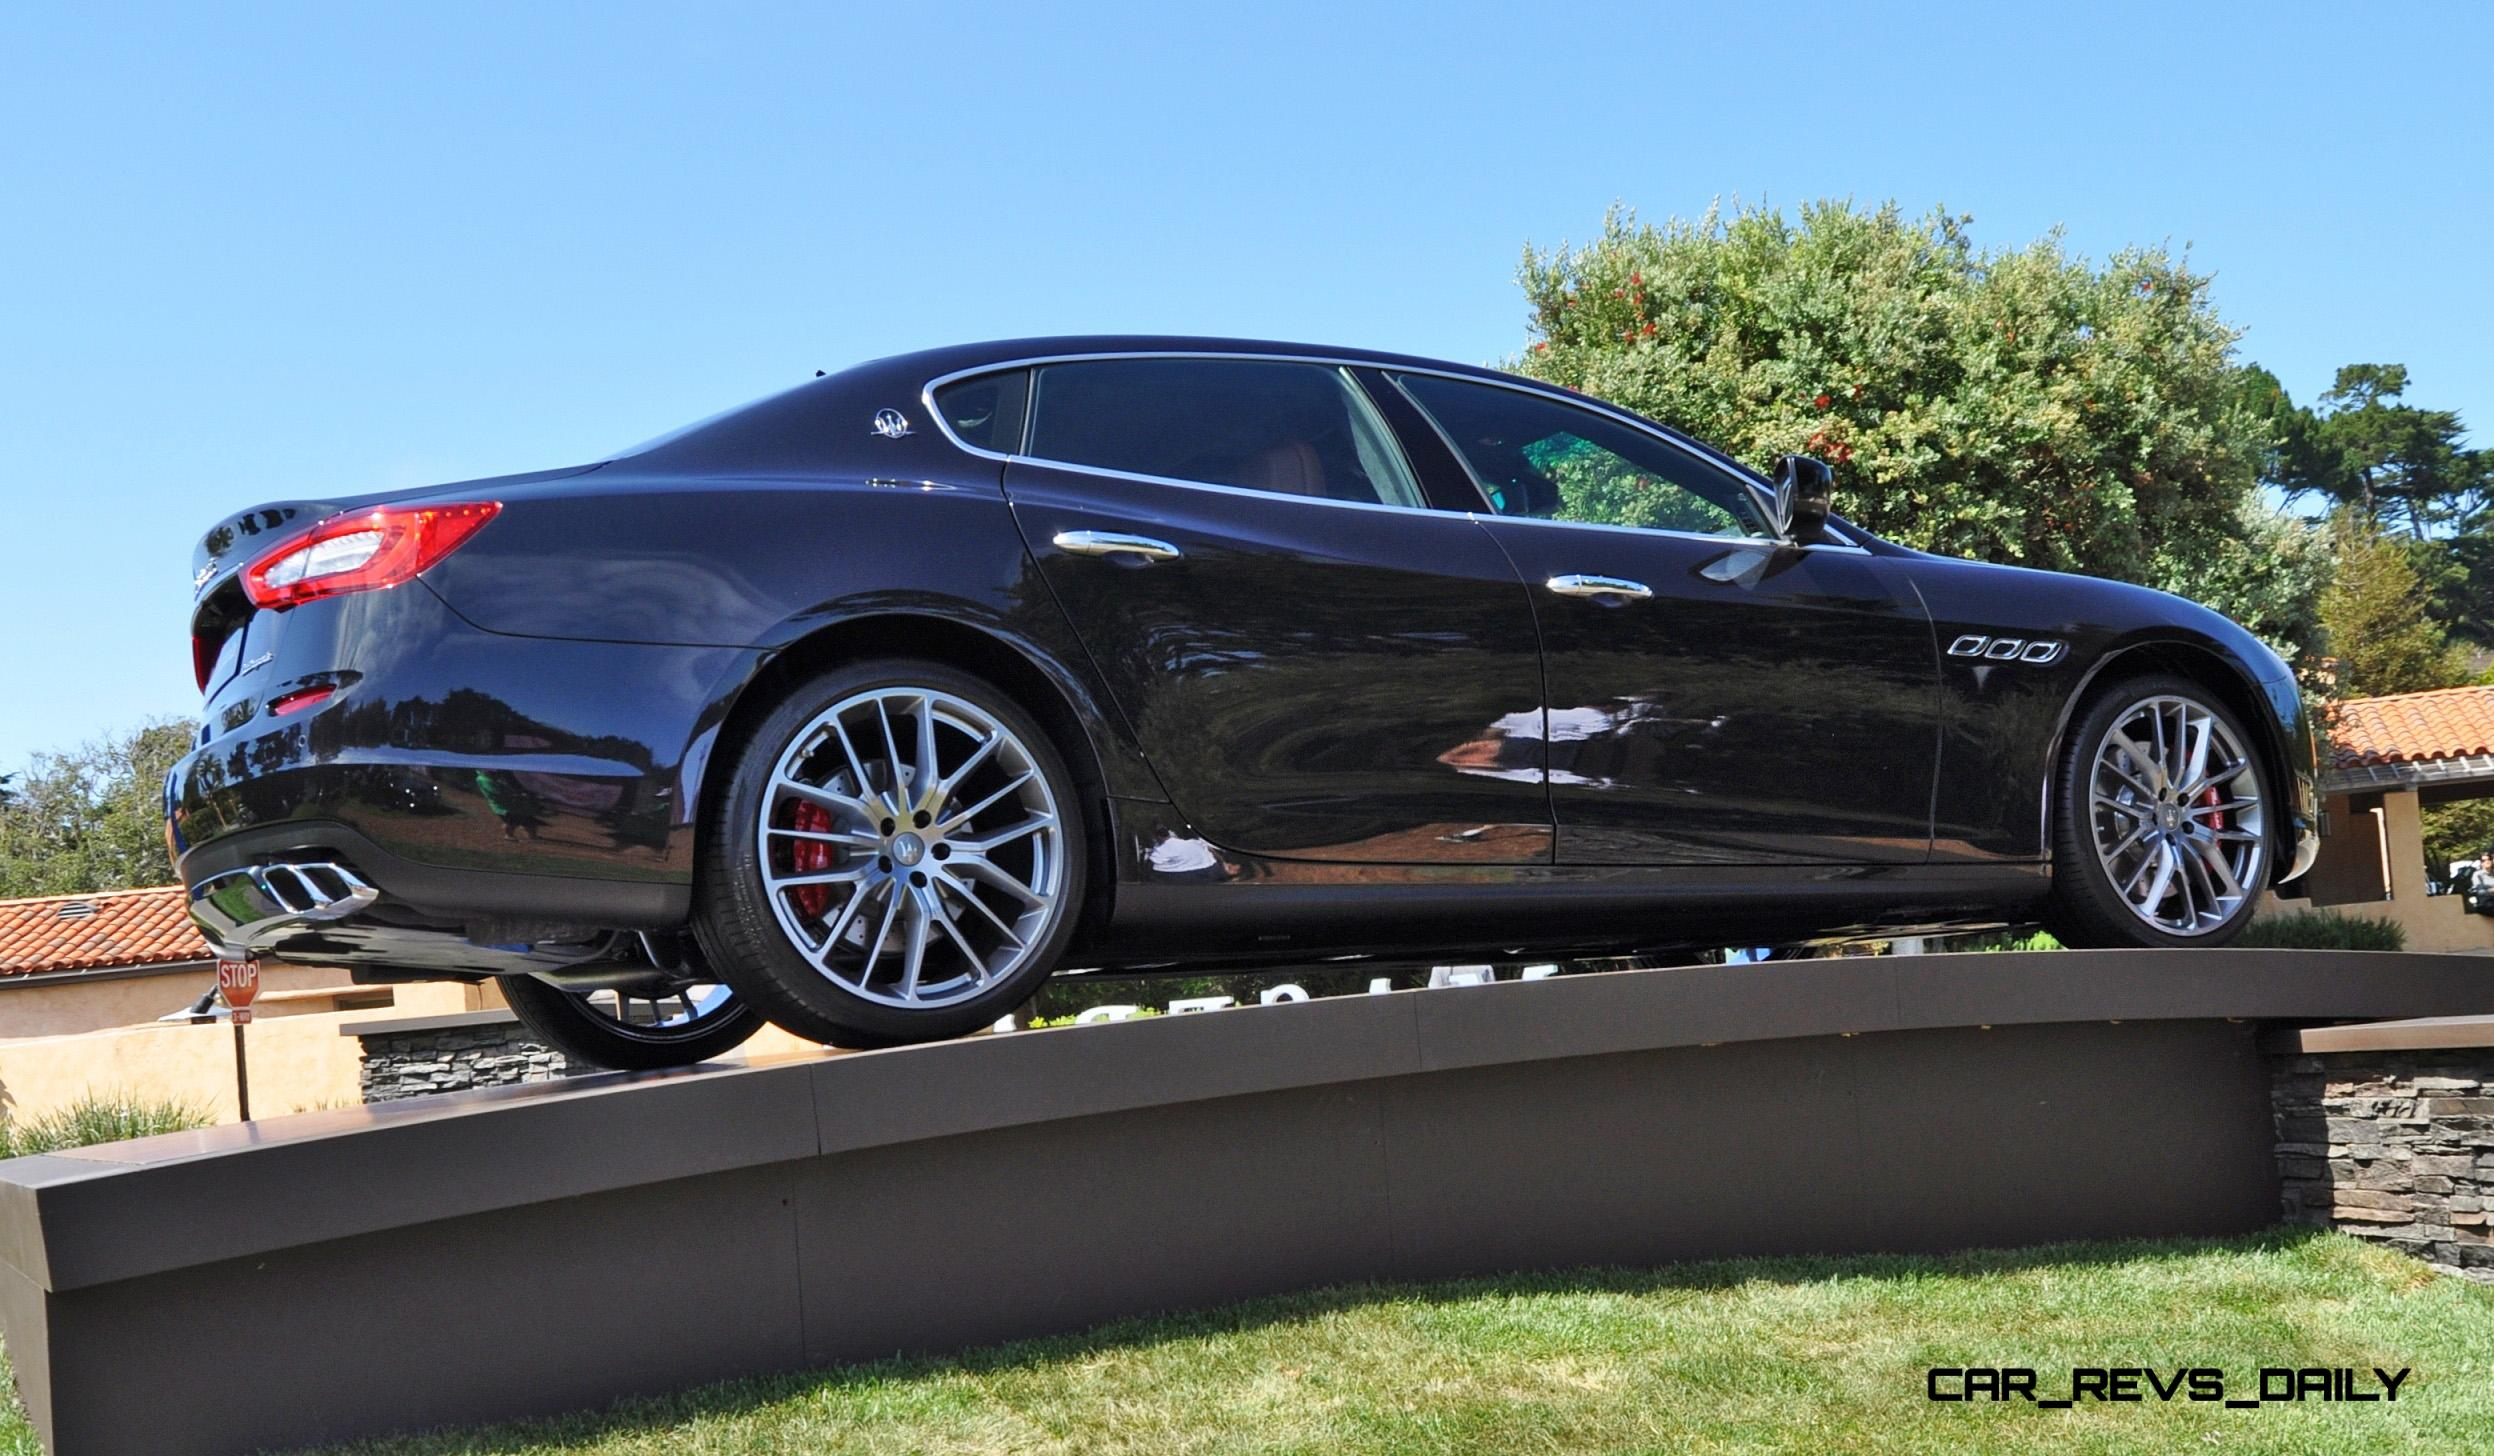 2015 Maserati Quattroporte Buyers Guide to Colors Wheels